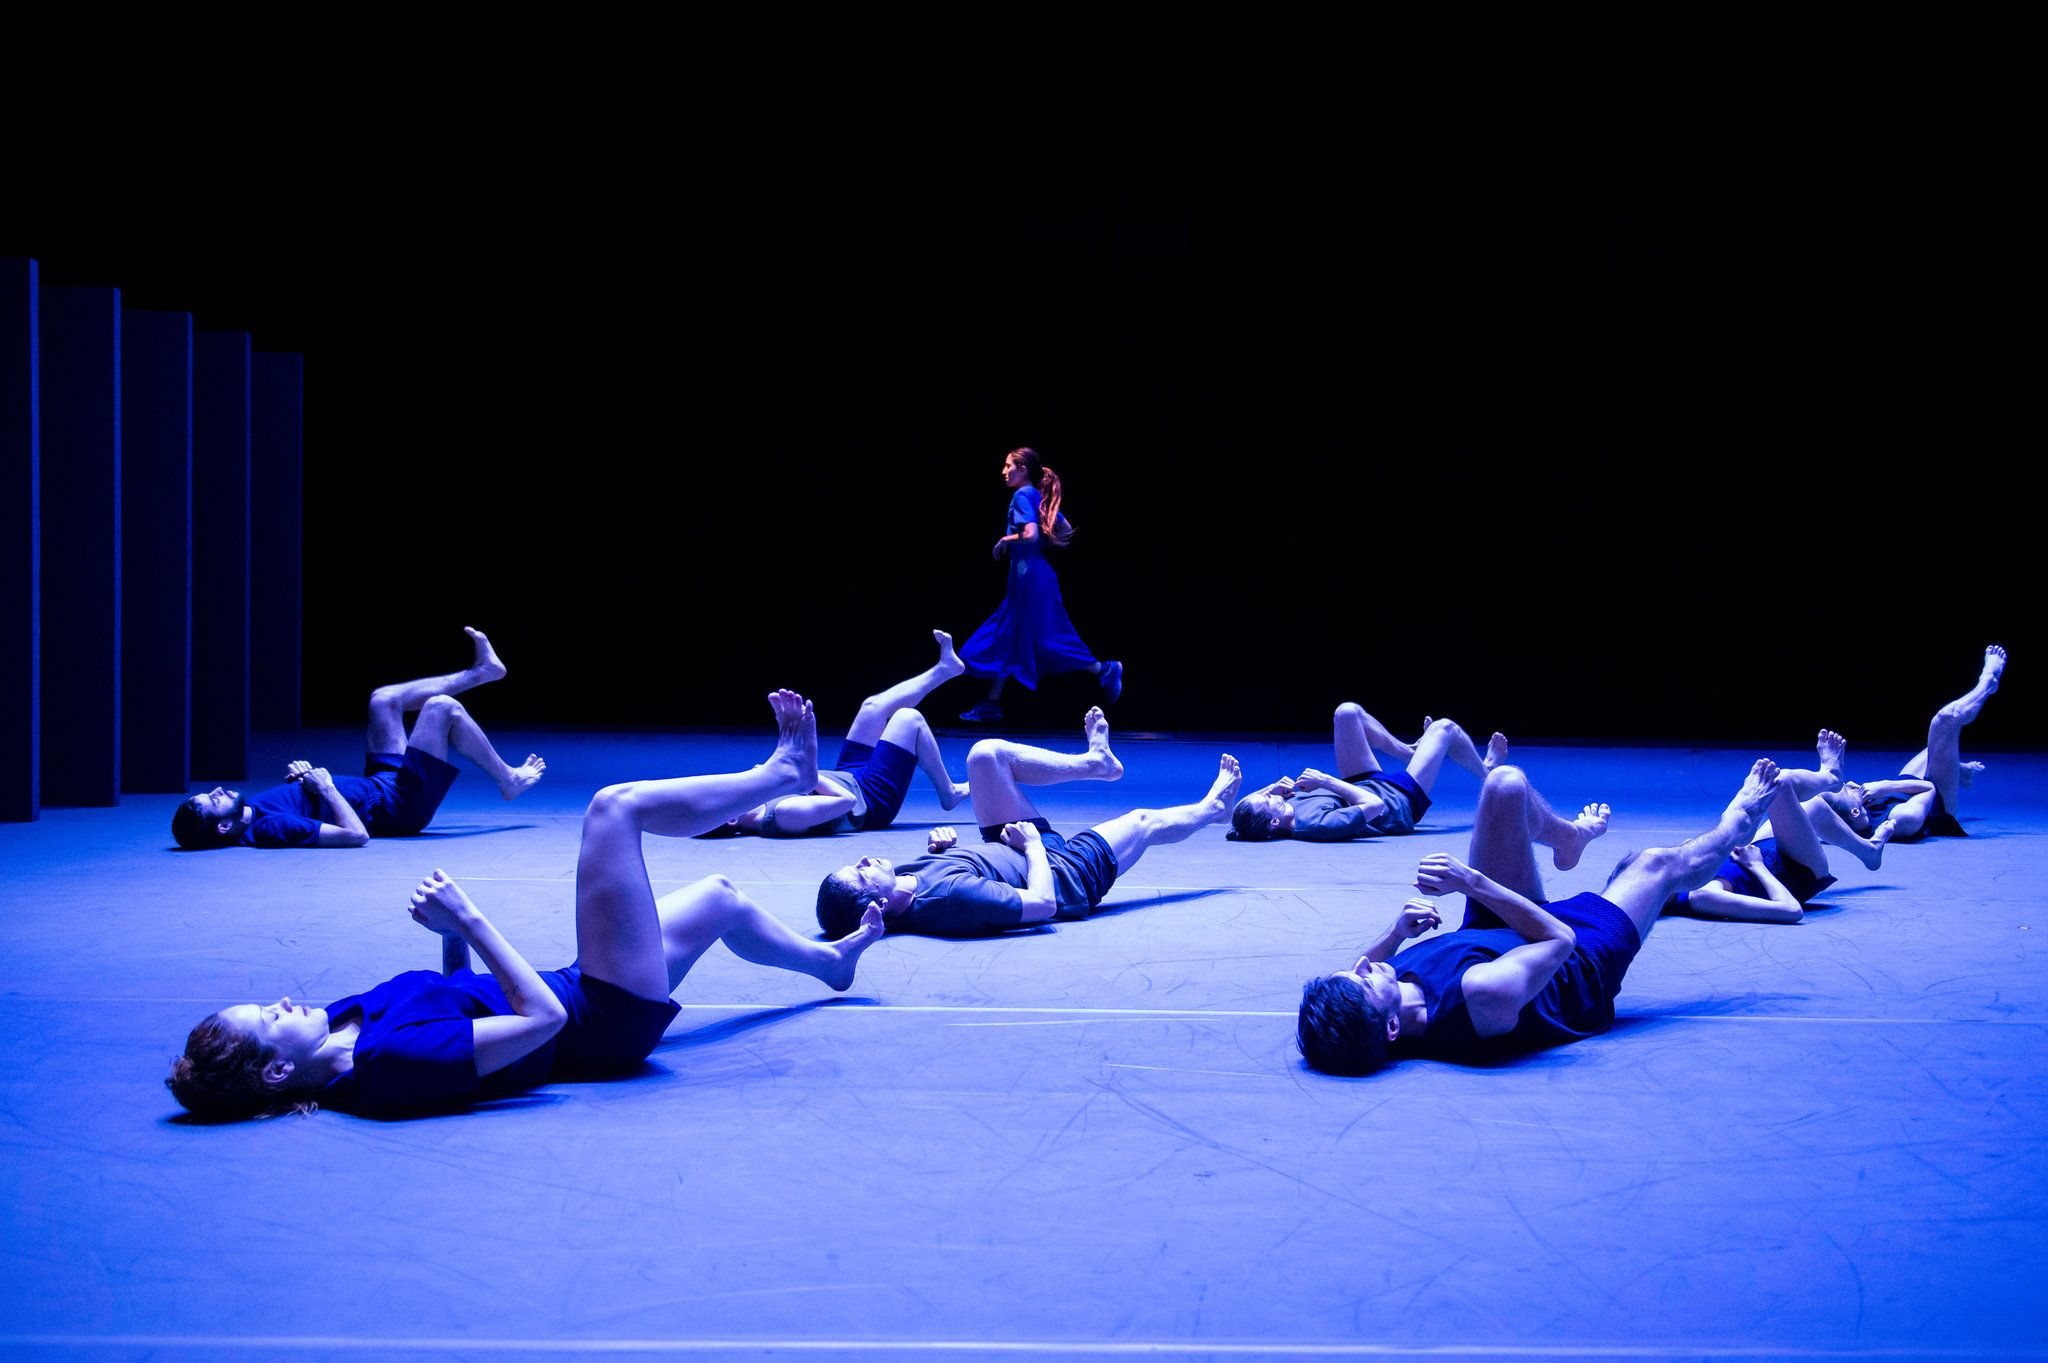 https://www.nytimes.com/2017/02/05/arts/dance/ohad-naharin-last-work-review.html?rref=collection/sectioncollection/dance